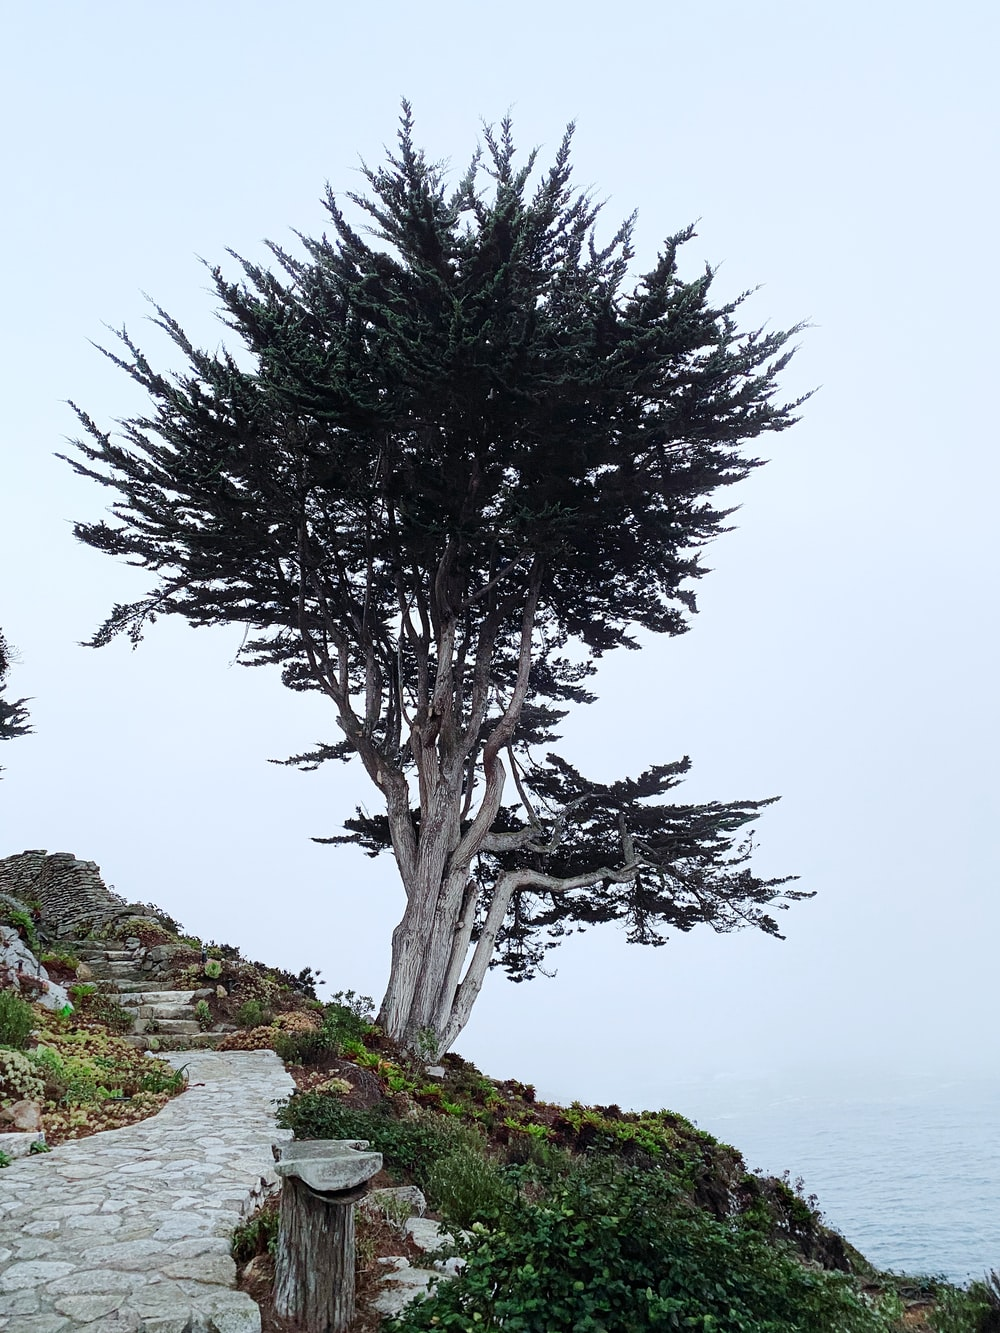 green tree on gray rock formation during daytime